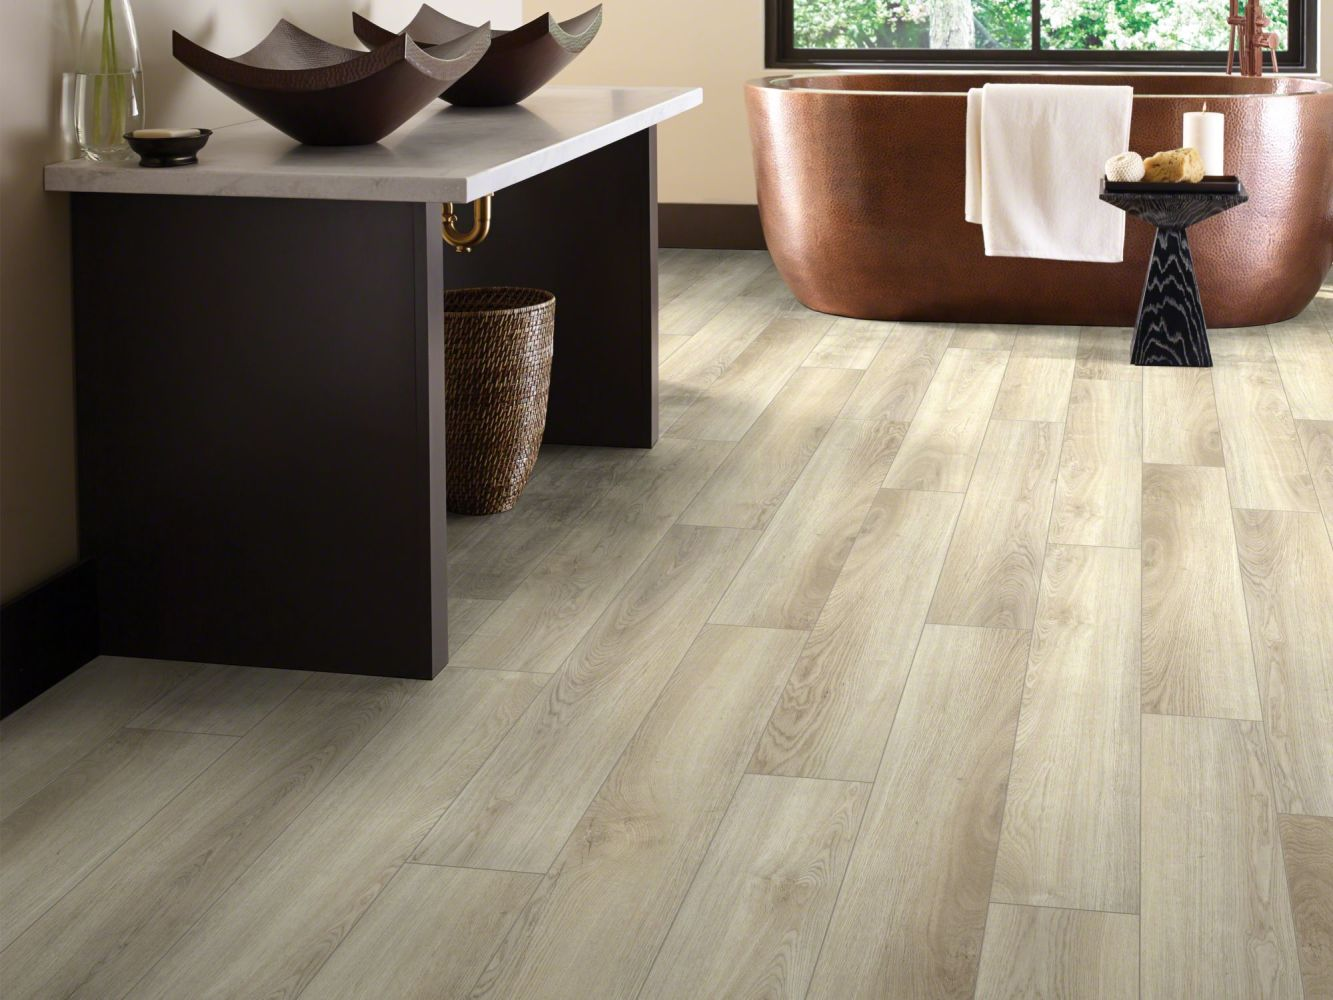 Shaw Floors Resilient Residential Distinction Plus French Oak 00257_2045V